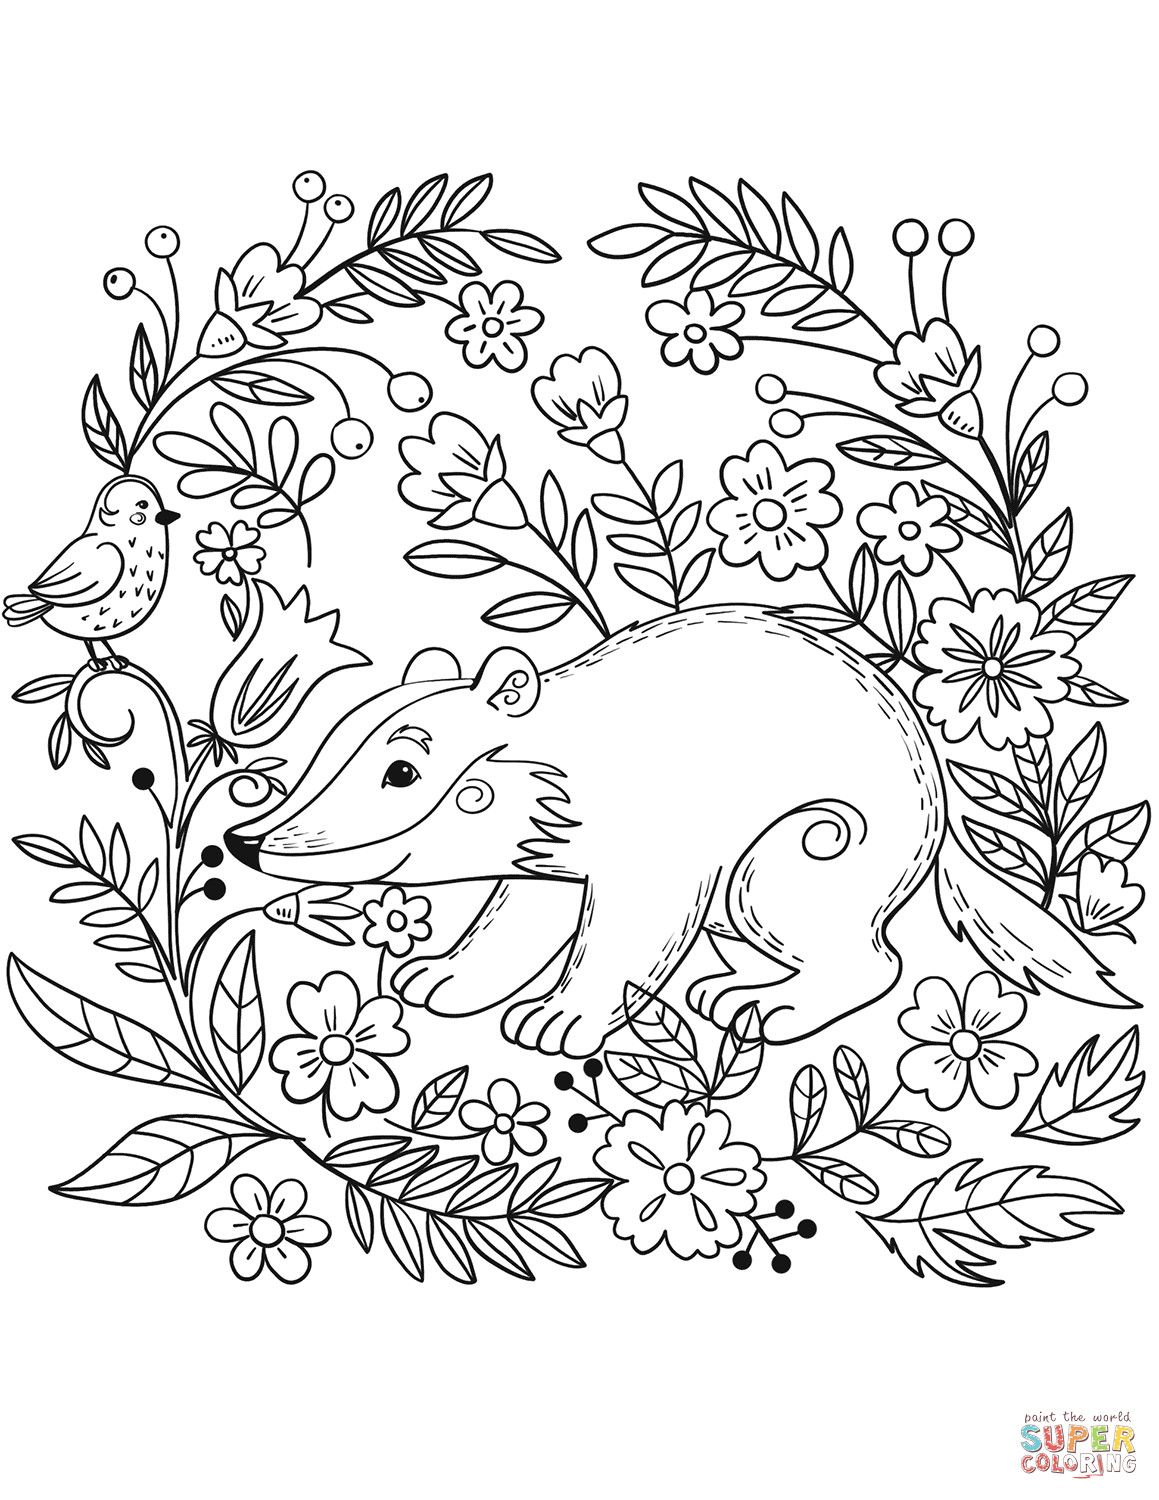 Badger Wisconsin Badgers Coloring Pages